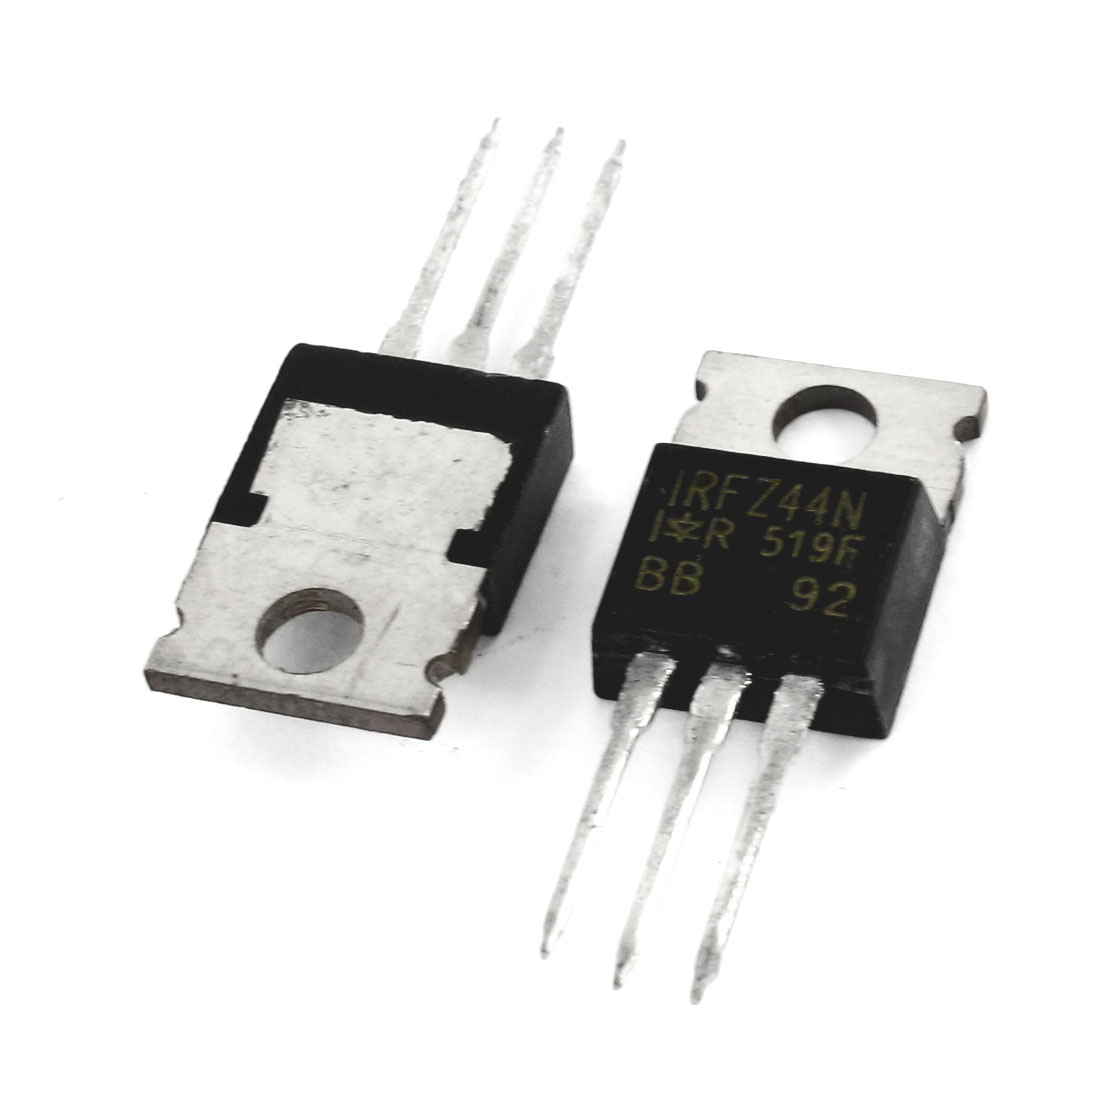 IRFZ44 55V 41Amp 3 Pin Semiconductor Silicon Transistor 2 Pcs